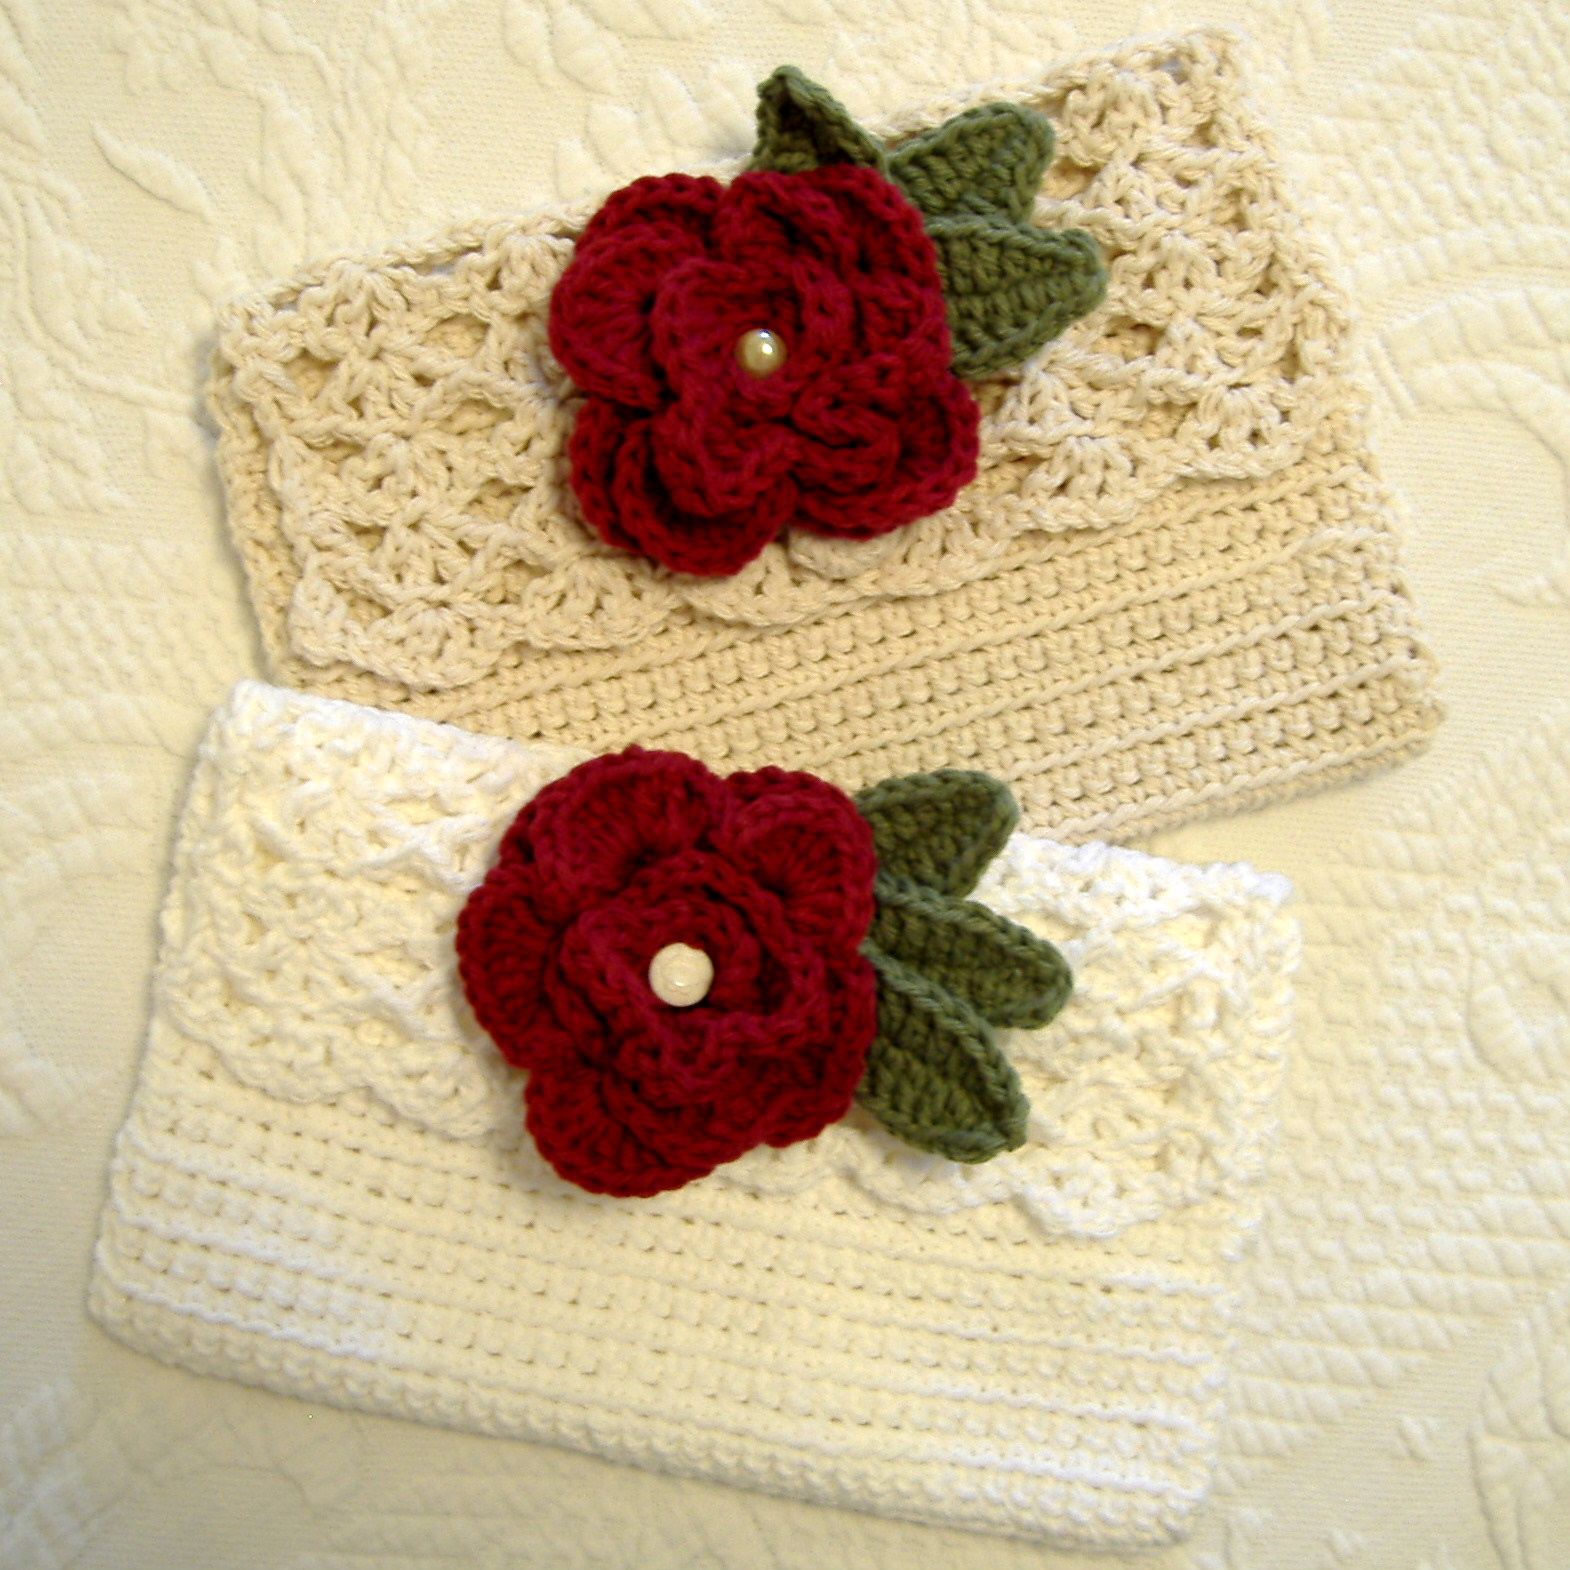 Free Crochet Purse Patterns For Kids : CROCHET PATTERNS PURSES FREE PATTERNS